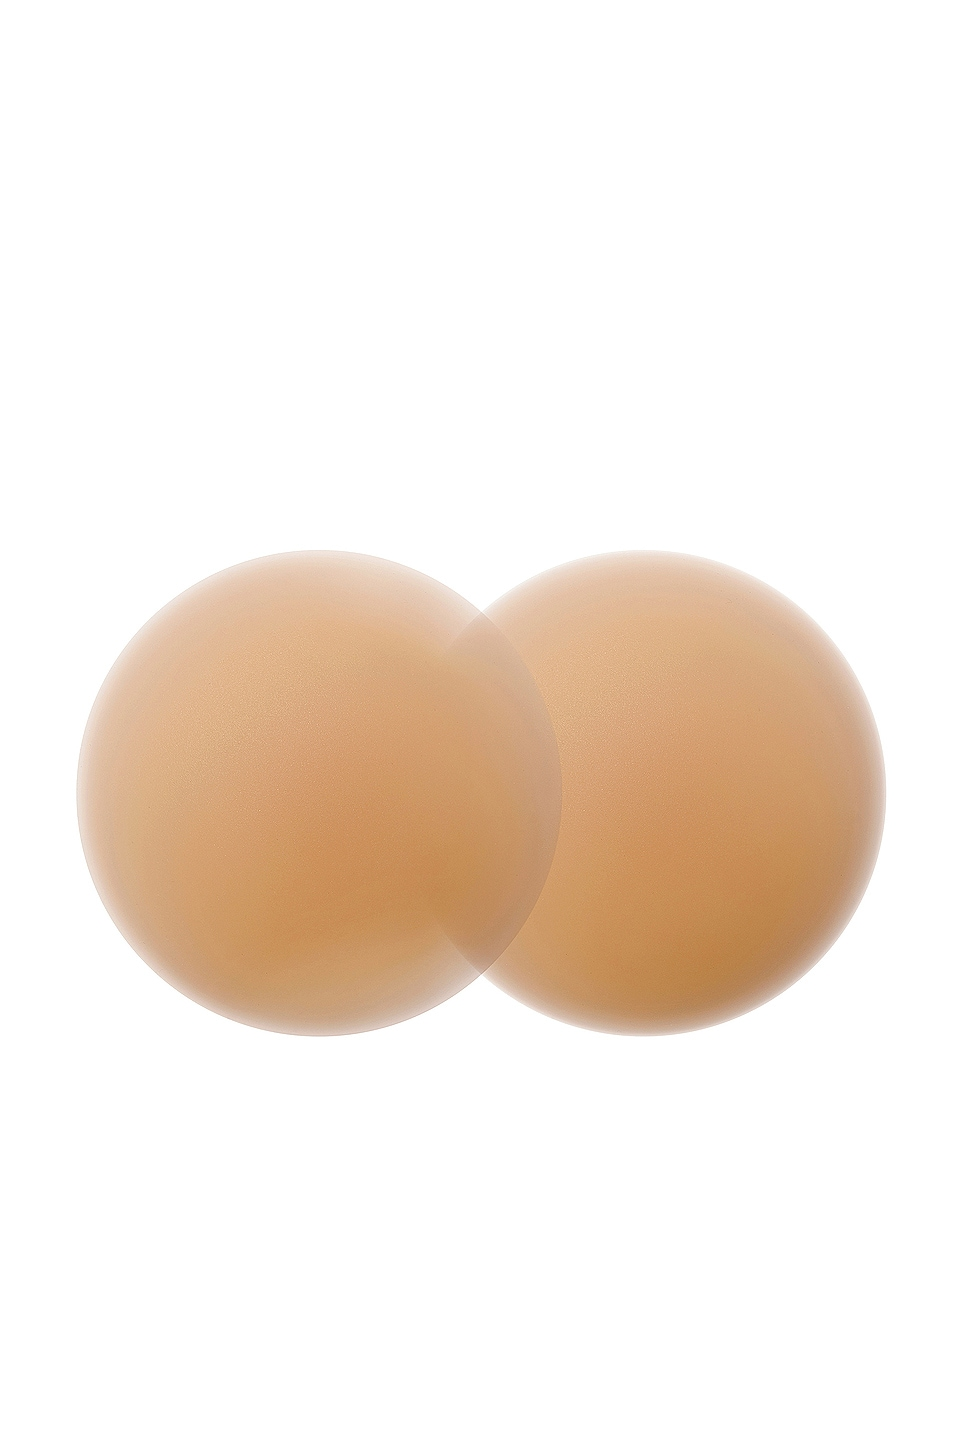 Bristols6 Nippies Skin Size 1 in Caramel